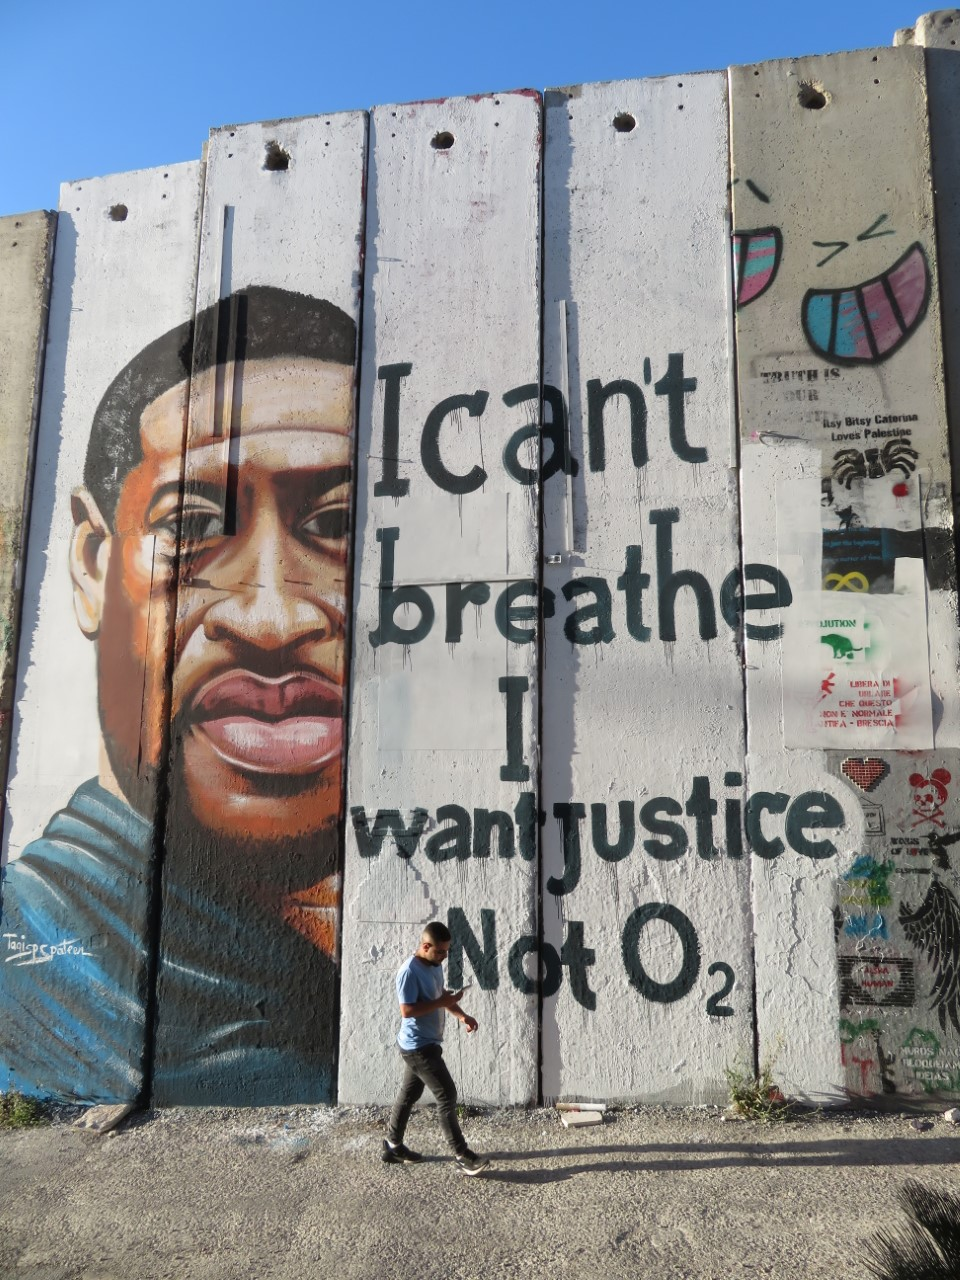 An image of George Floyd, painted on the Bethlehem side of Israel's Separation Barrier/Wall.